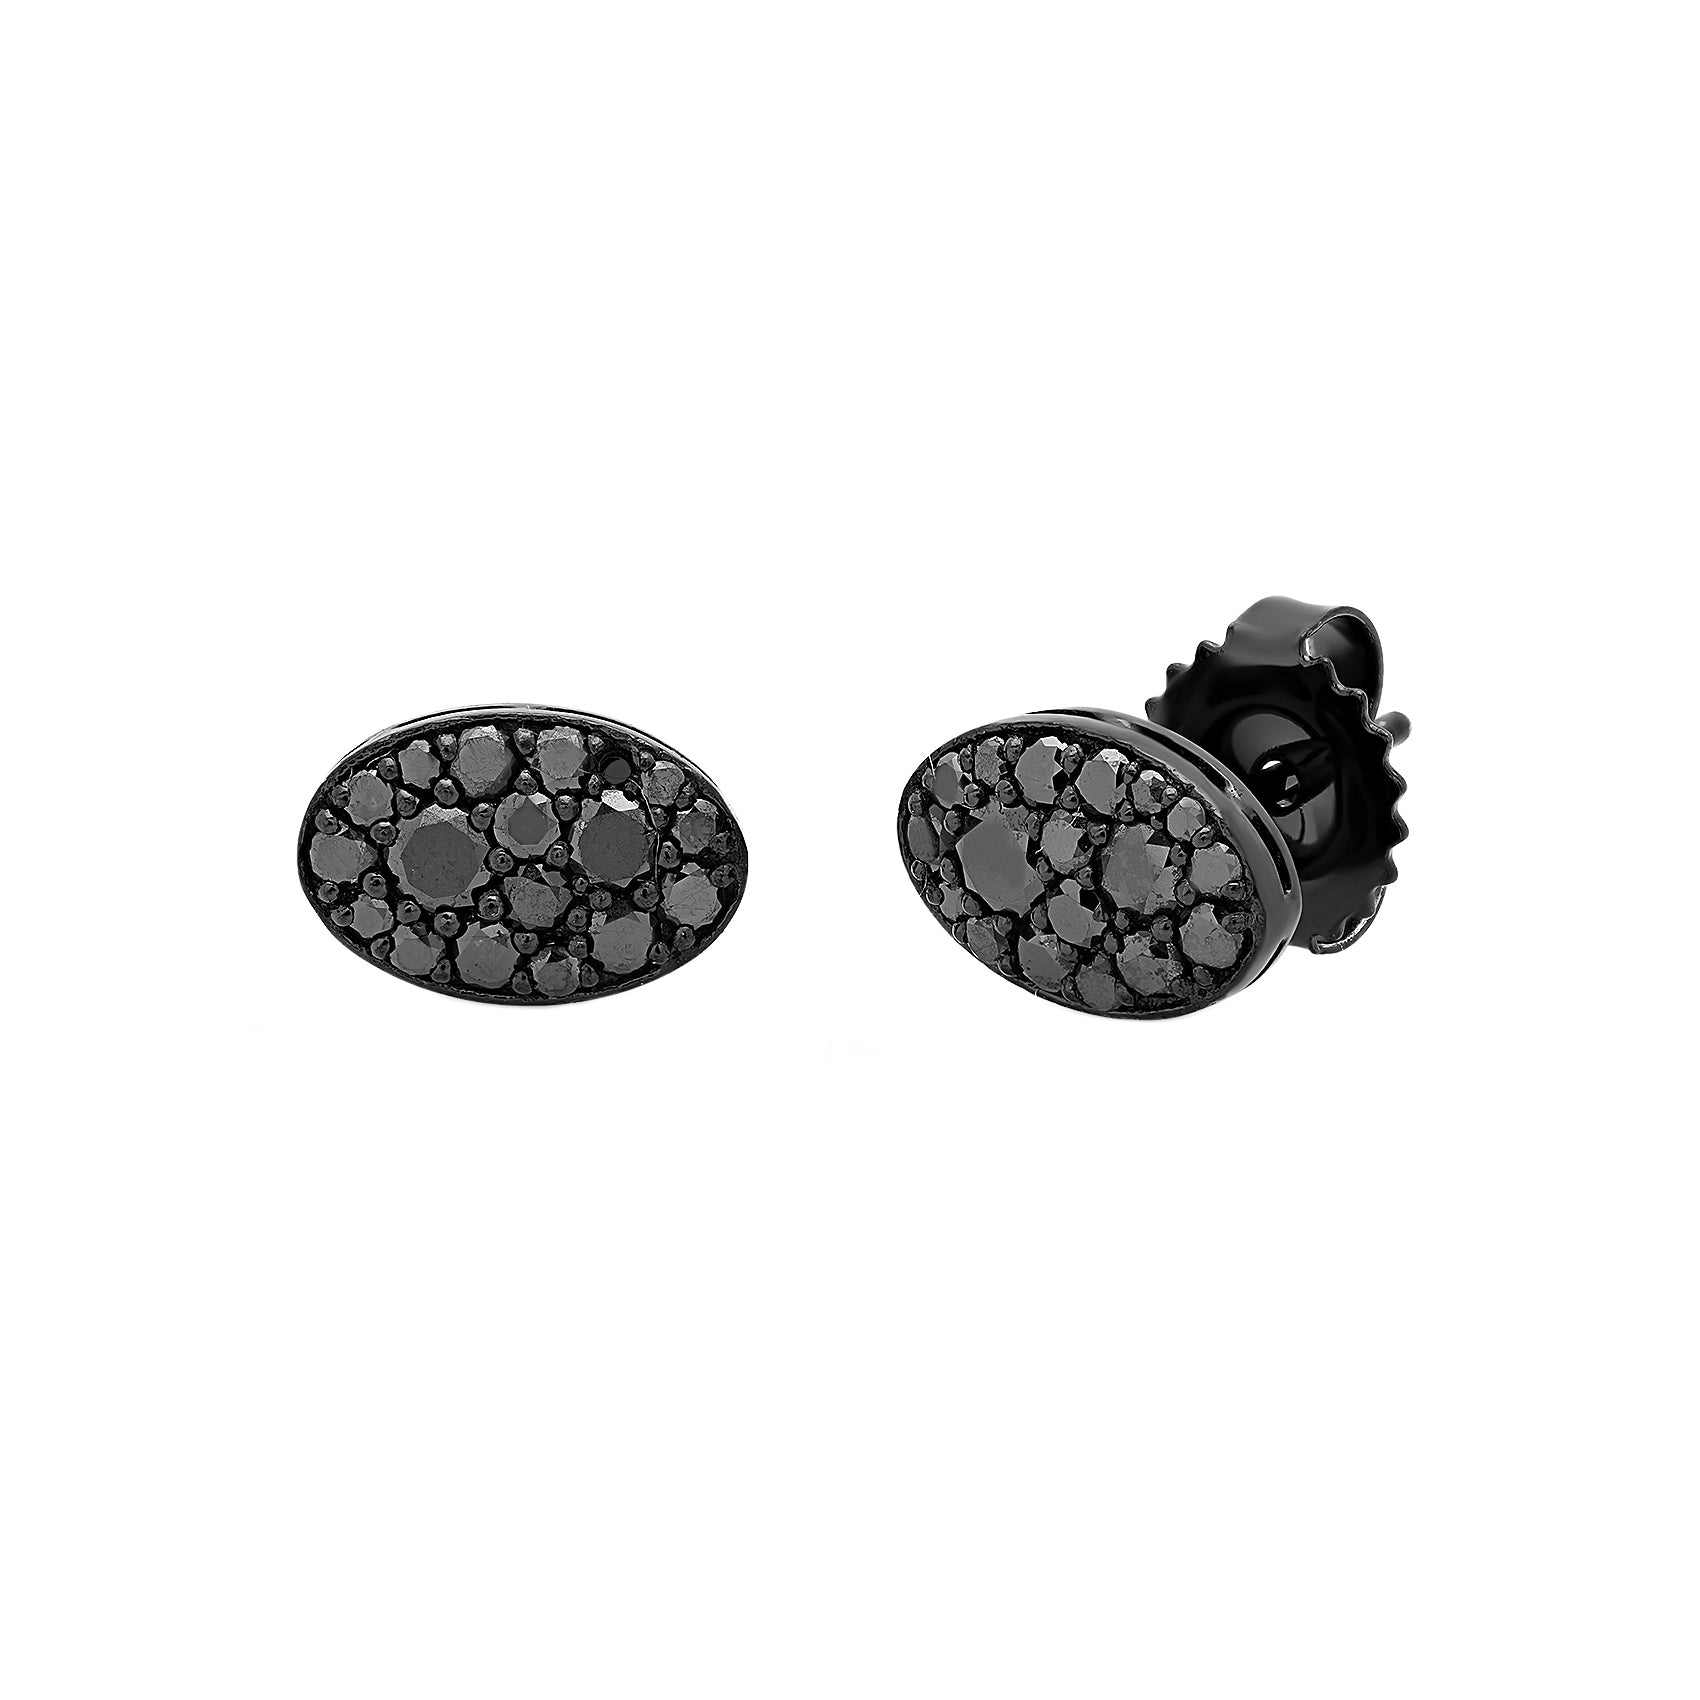 Black Baby Les Chevalie Earrings by Colette for Broken English Jewelry